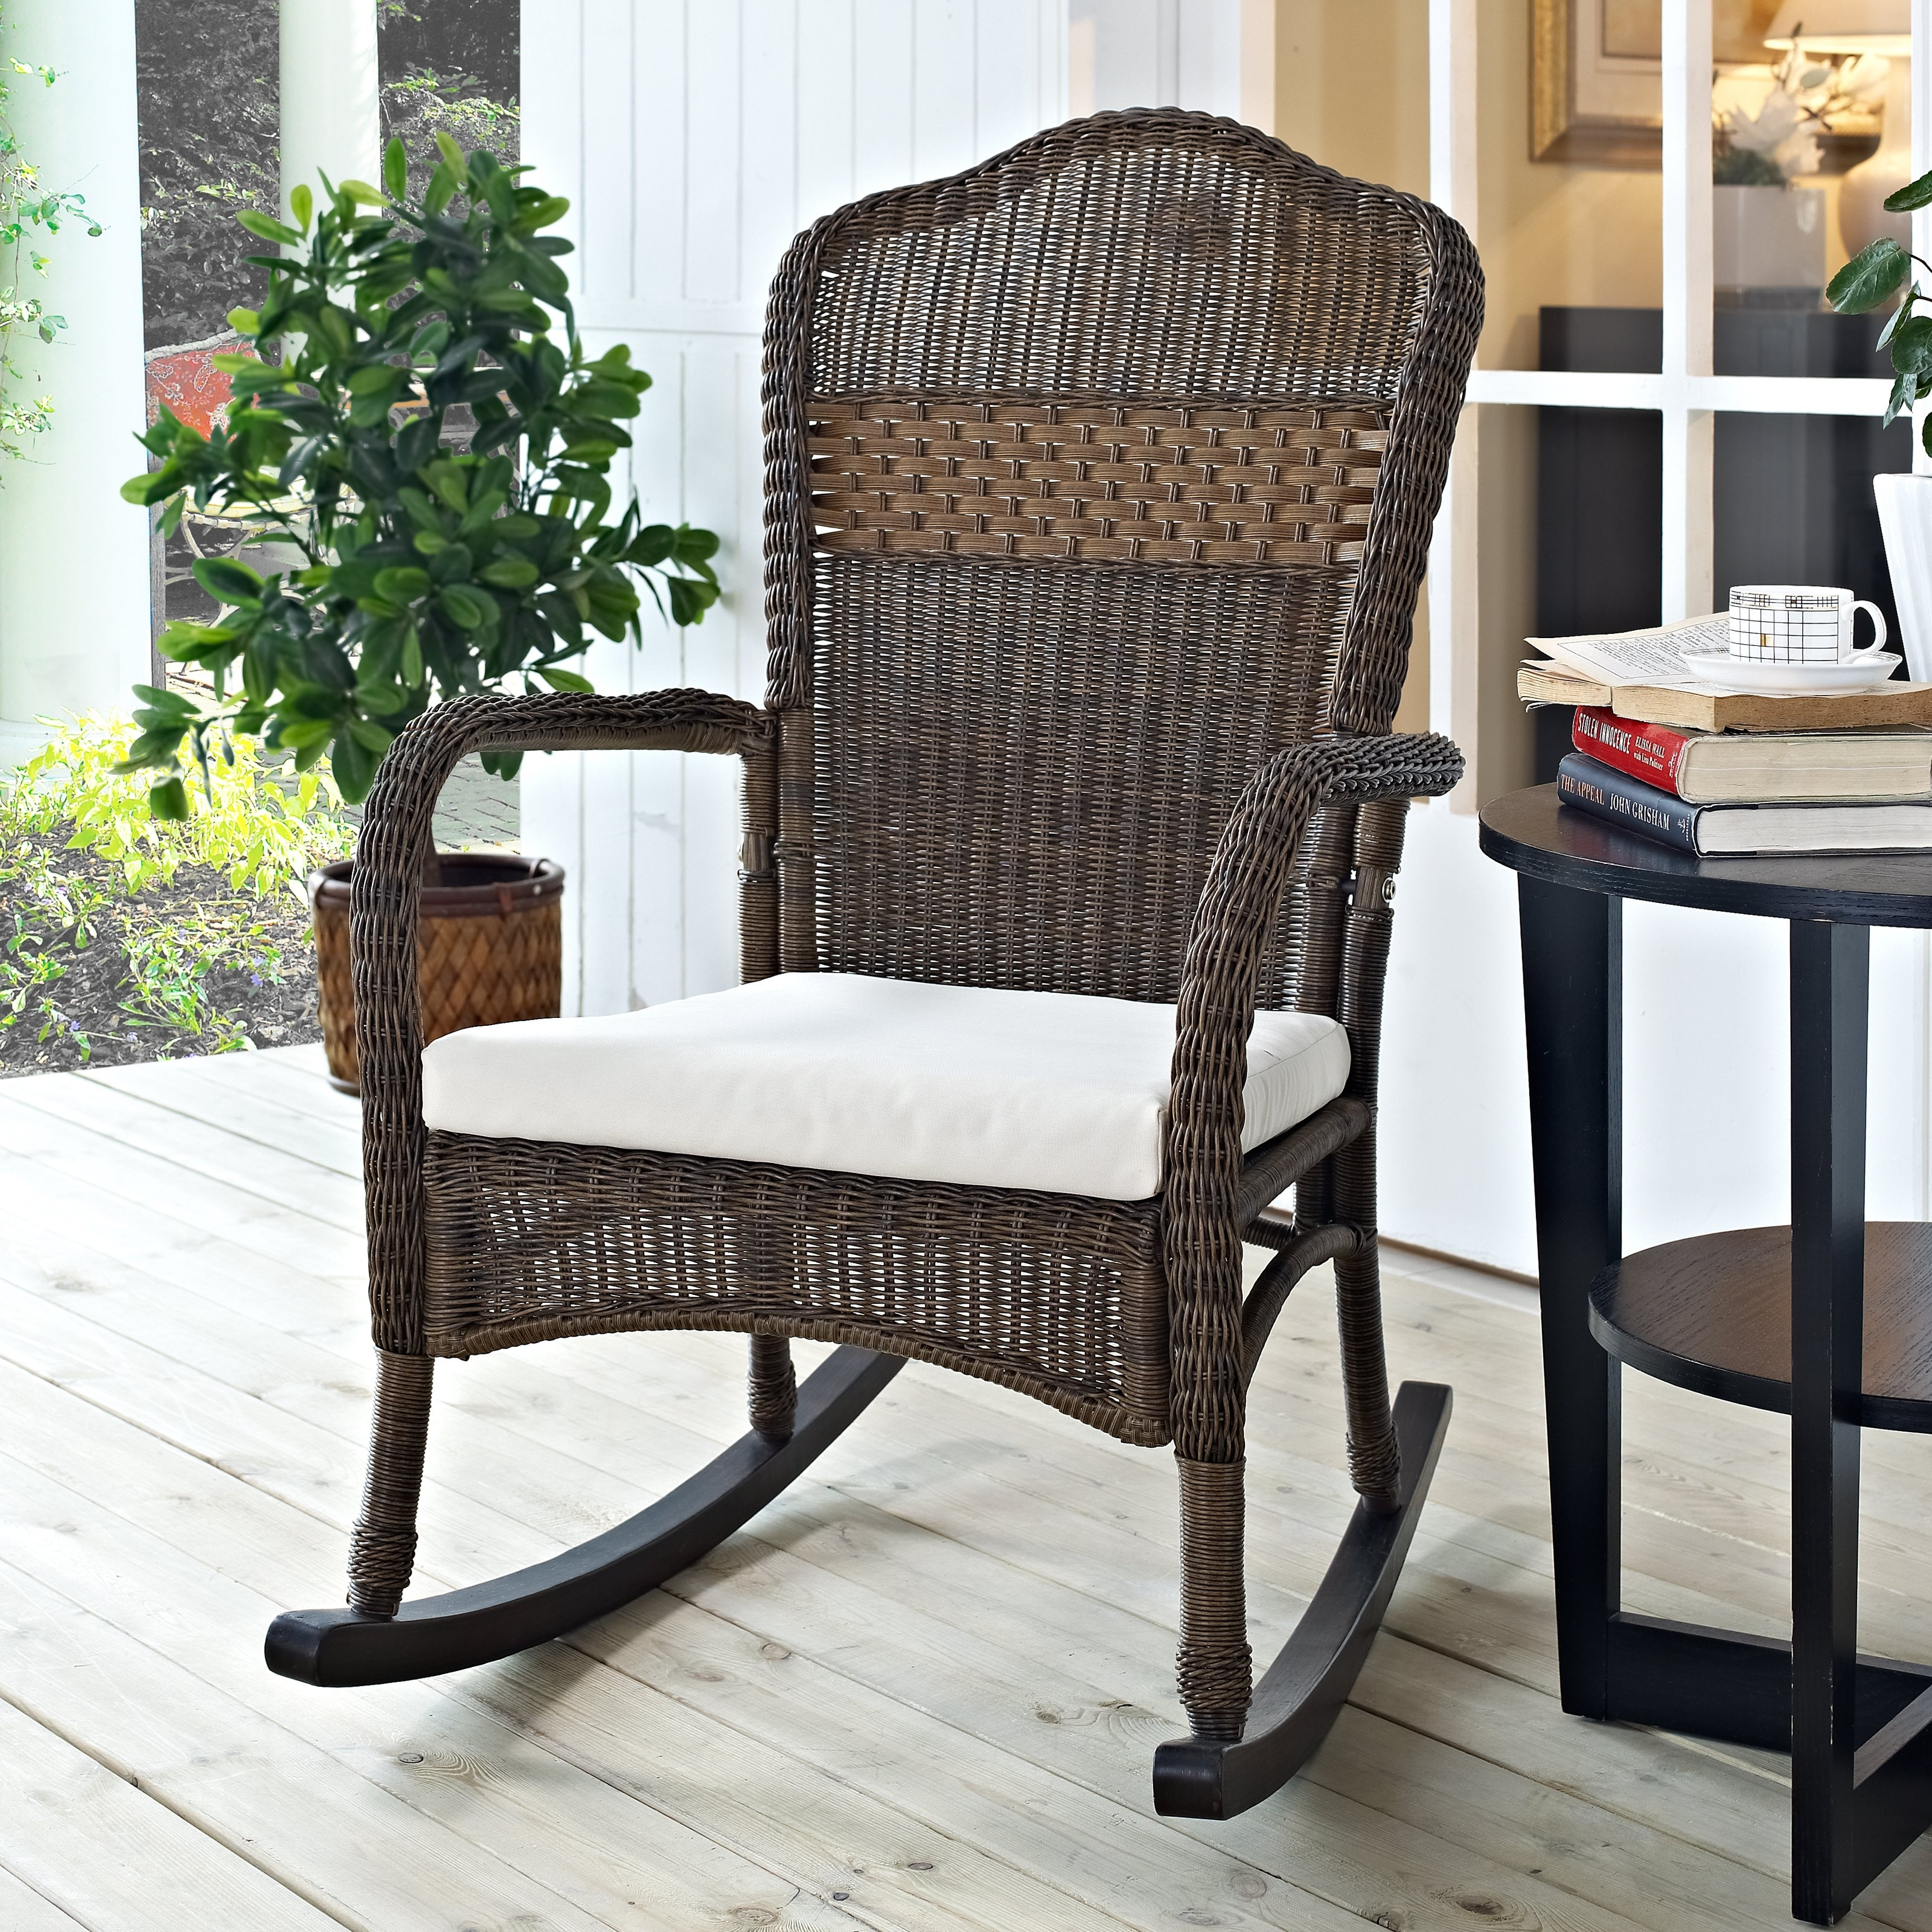 Popular Photo of Resin Wicker Rocking Chairs